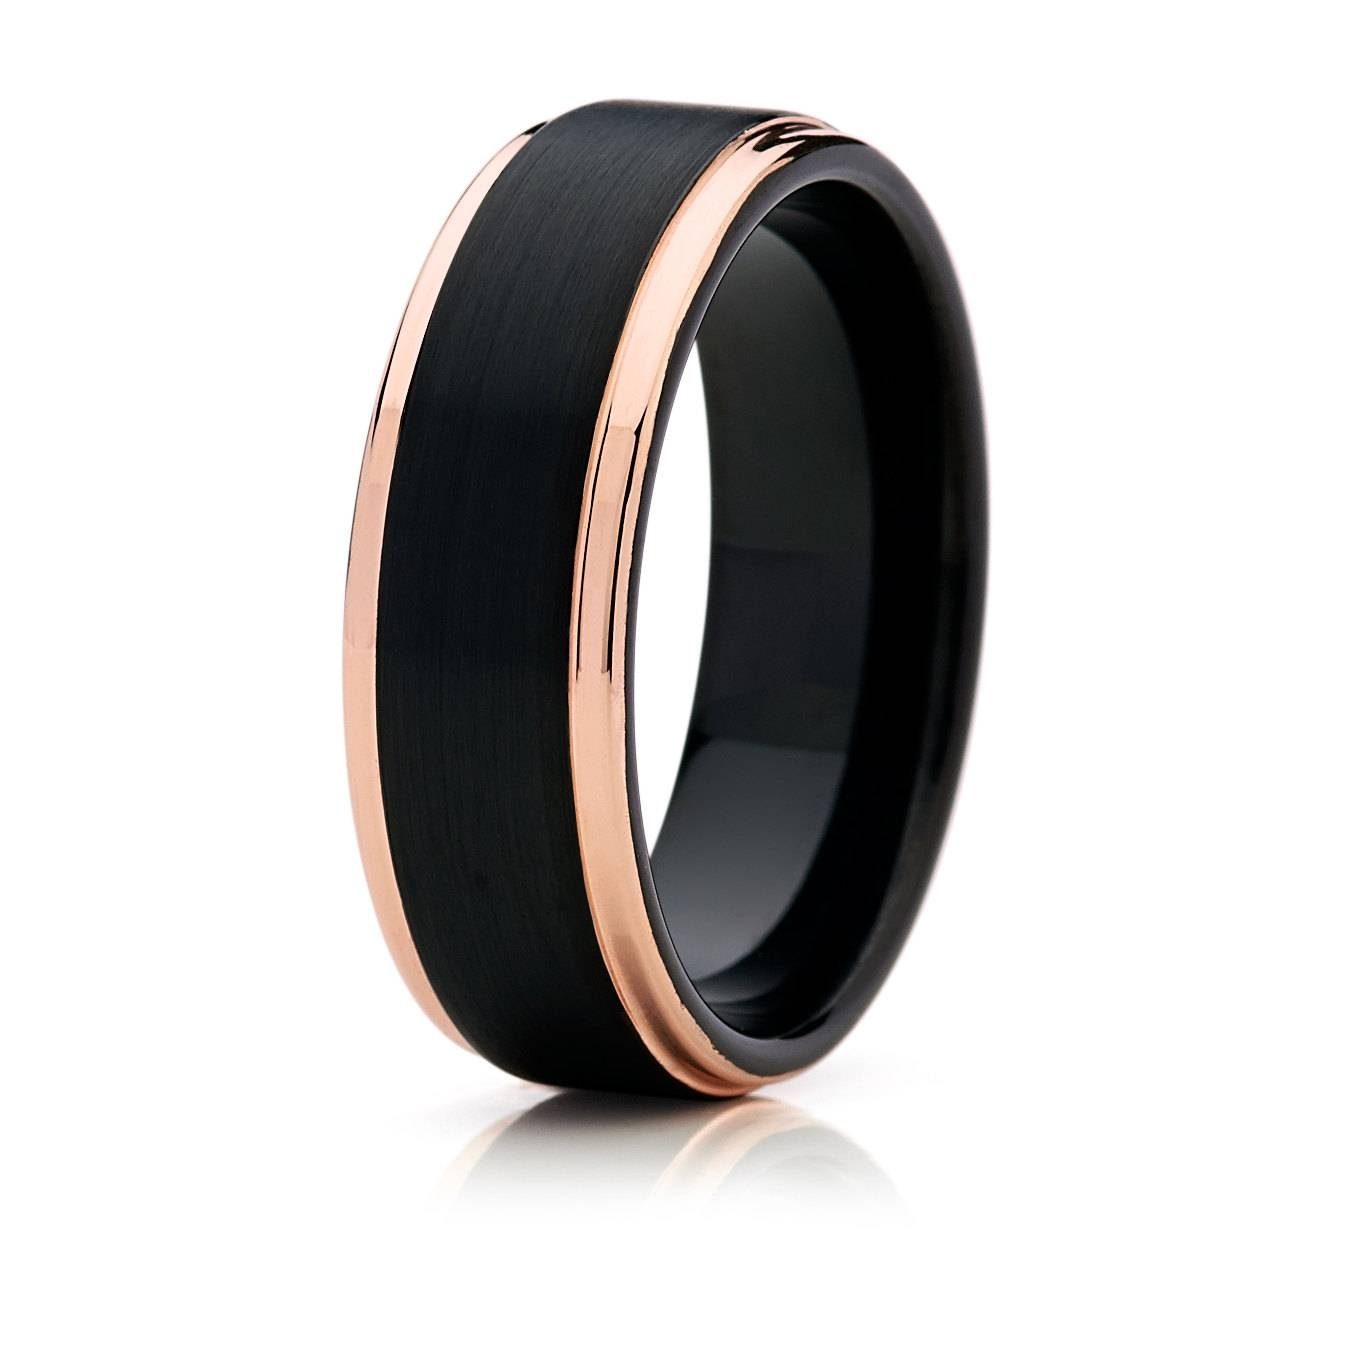 Wedding Rings : Silver Tungsten Wedding Bands For Men Striking With Black And Silver Men's Wedding Bands (View 6 of 15)